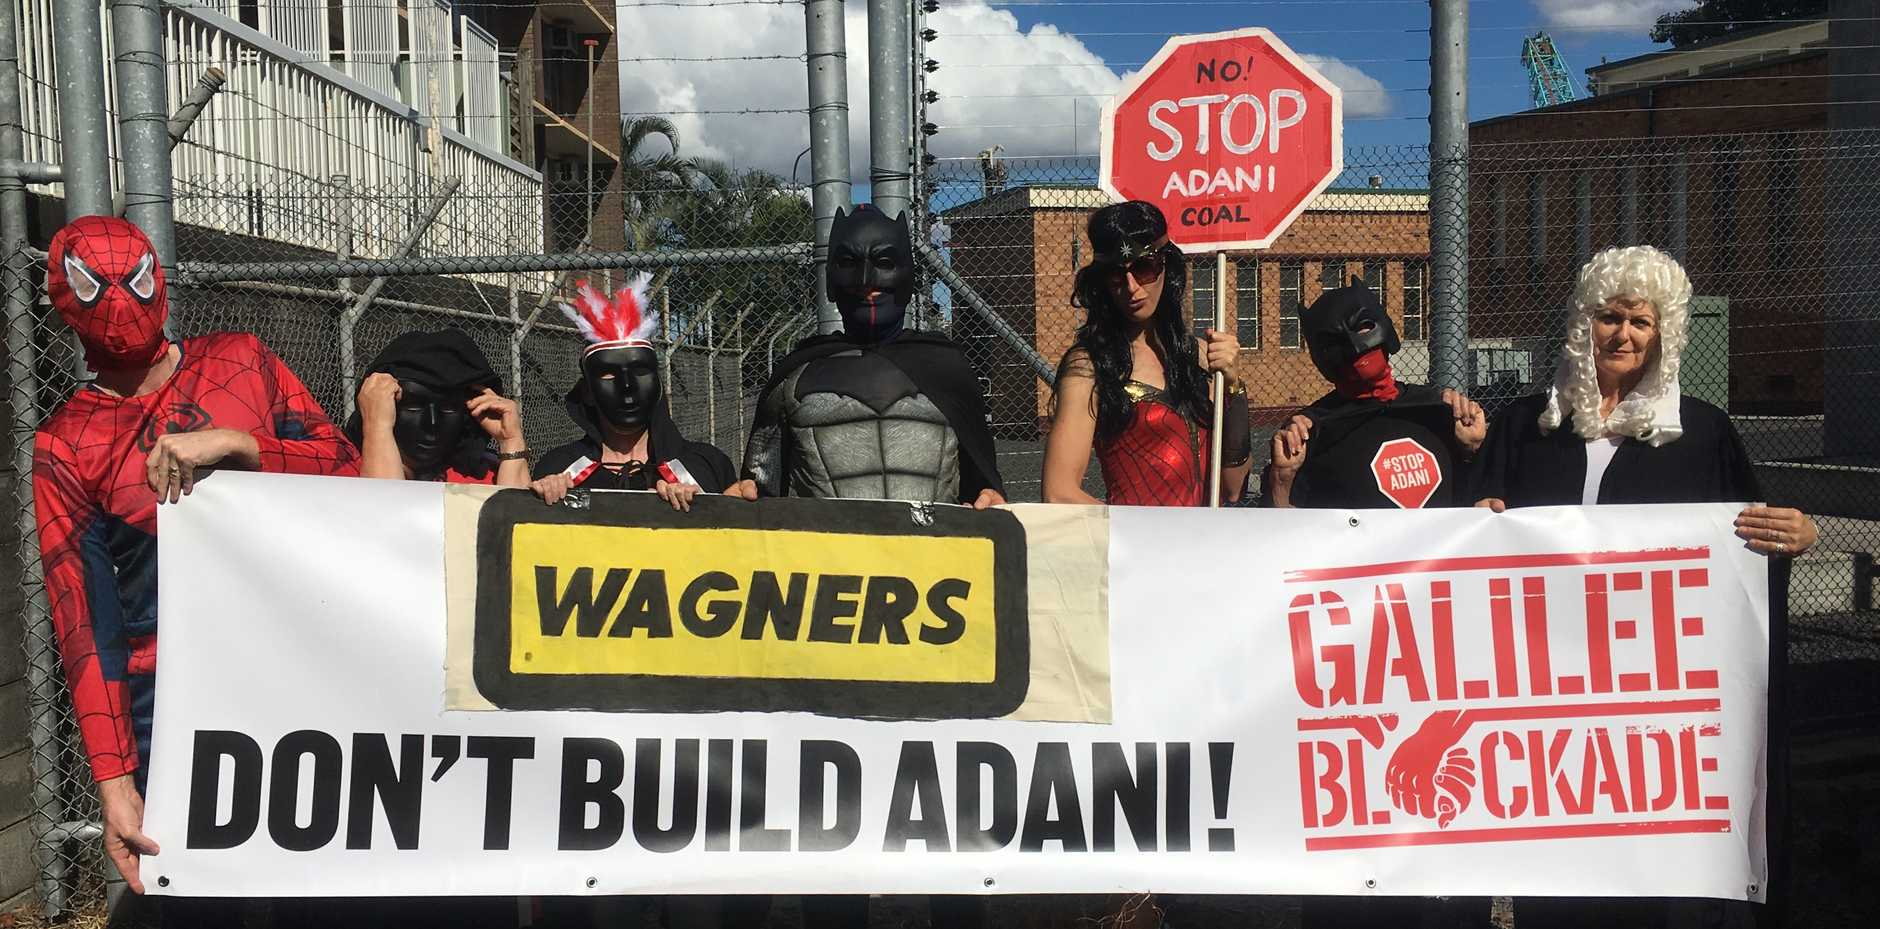 Adani protesters at Wagners site.